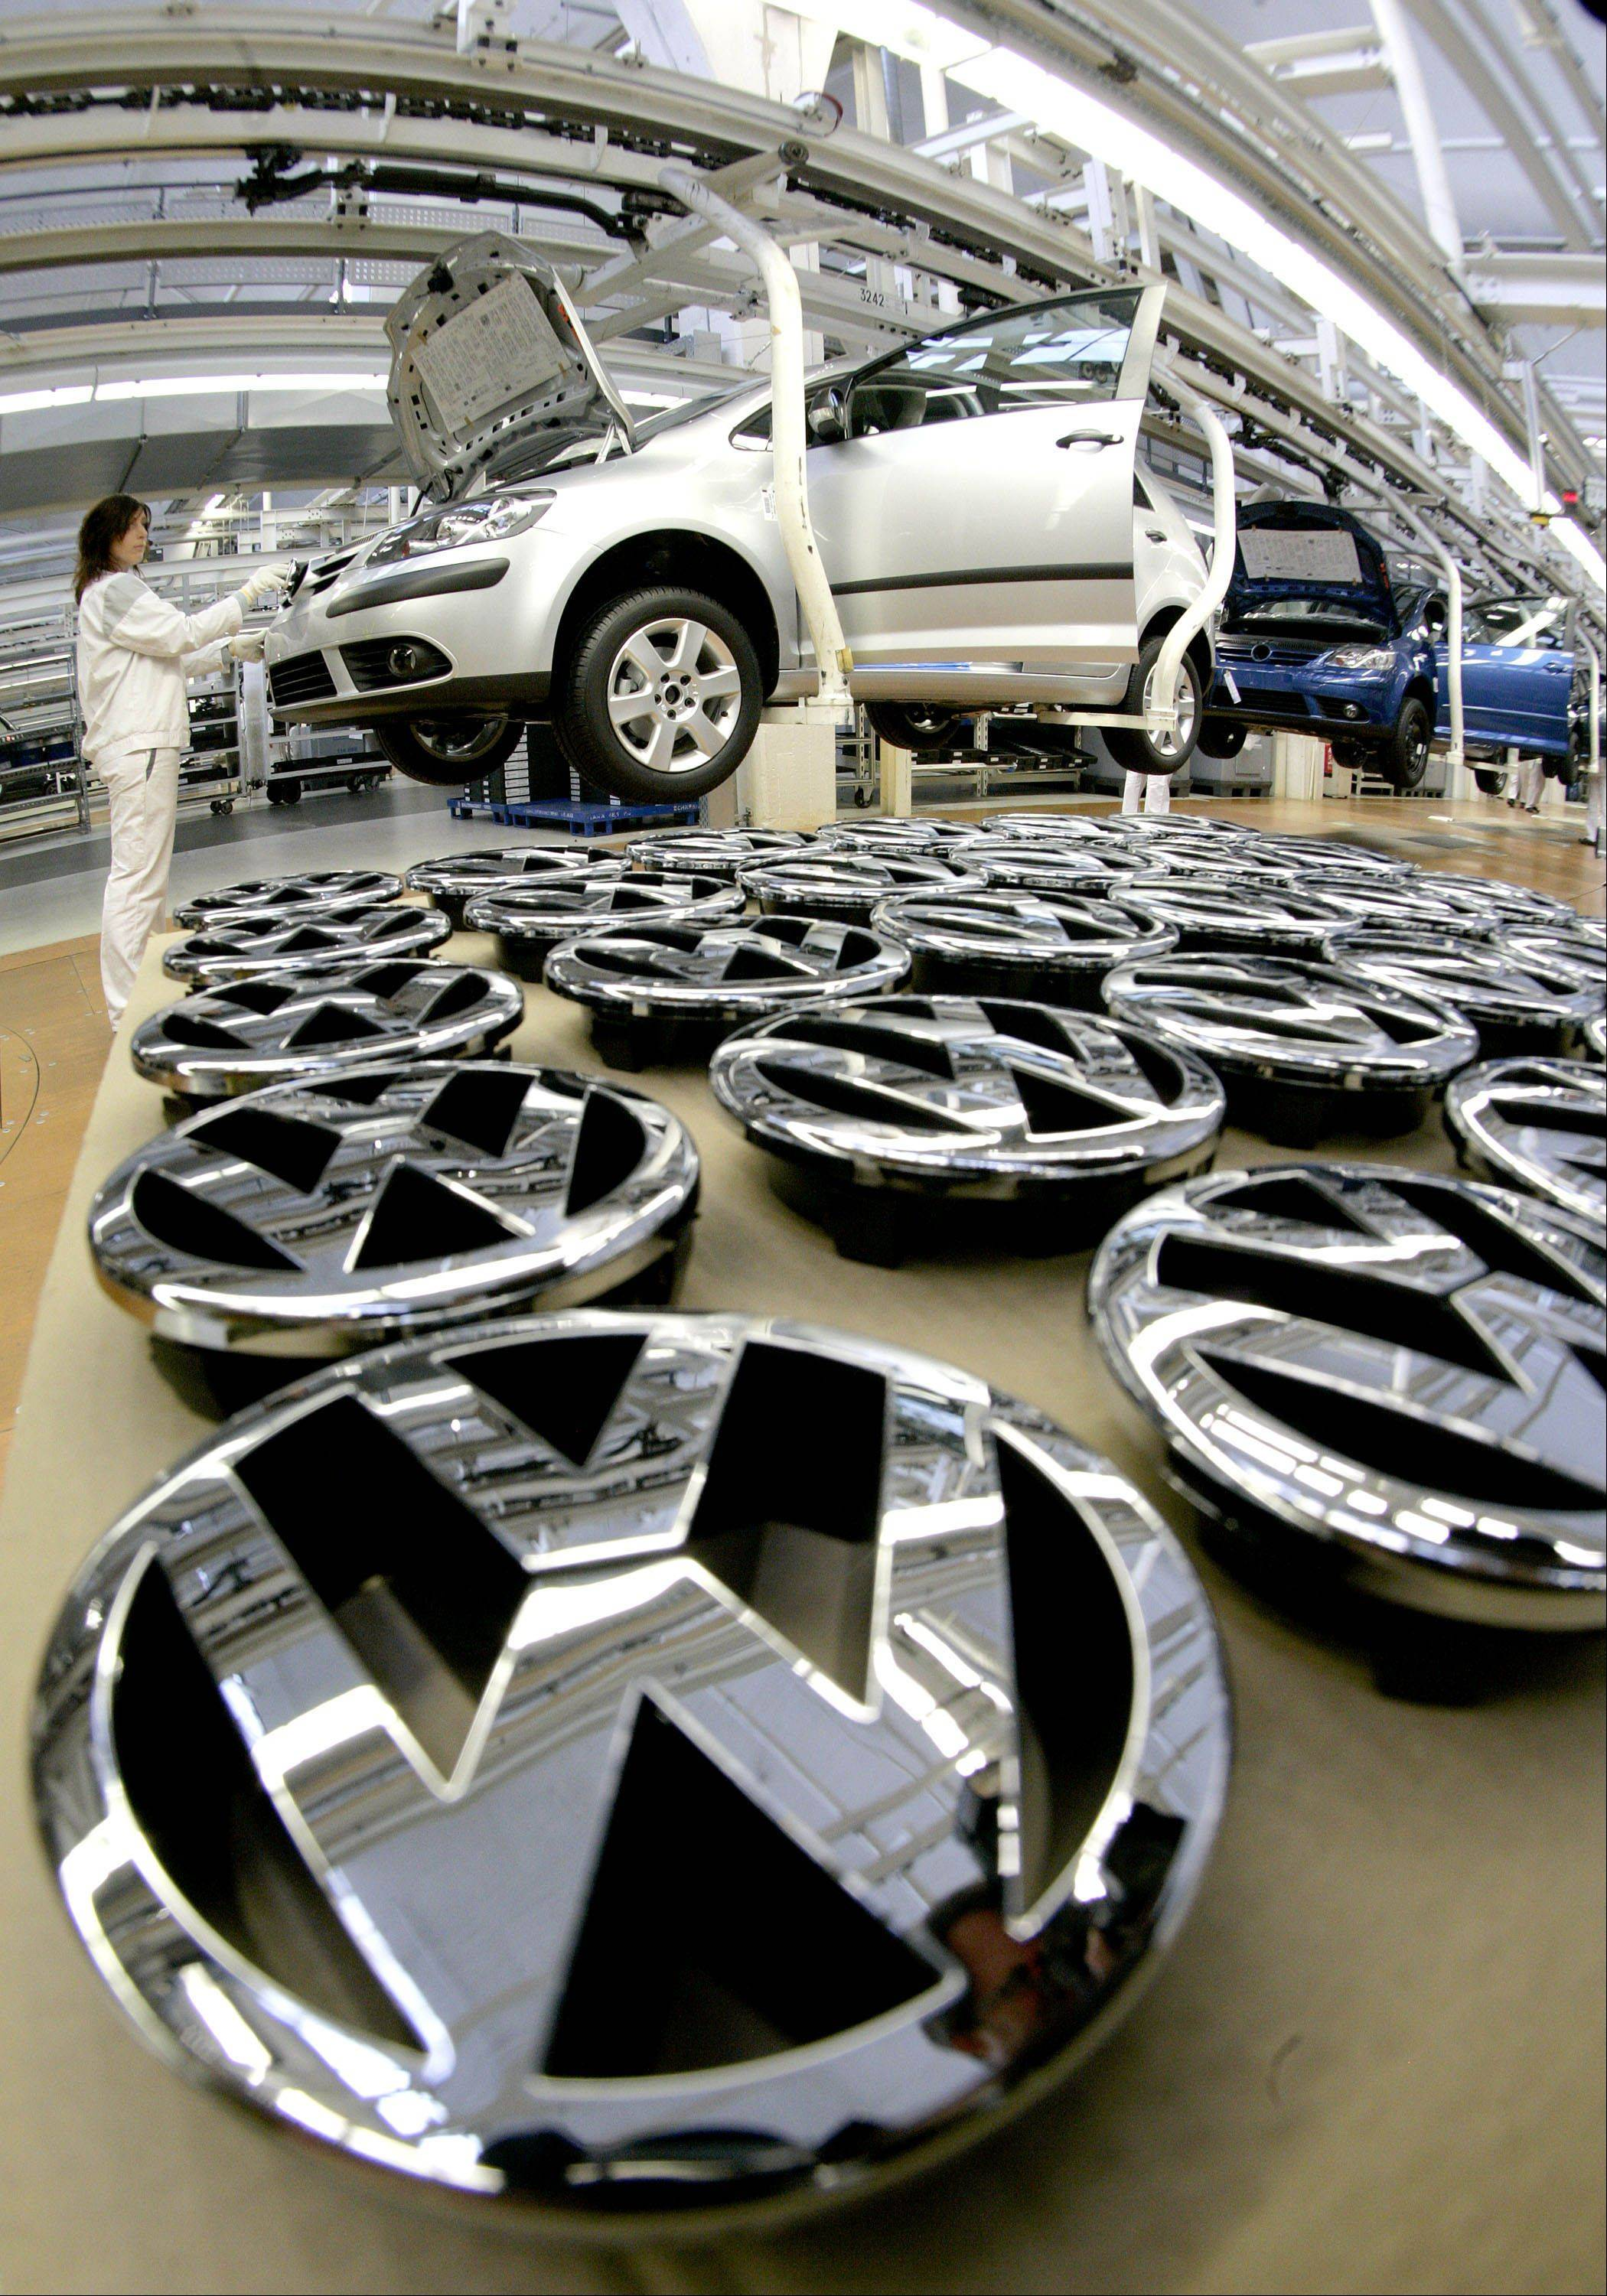 "Volkswagen has become more cost conscious in recent months, saying that ""further belt-tightening"" was needed. The same month the company outlined plans to boost profitability for brands including the VW nameplate and the loss-making Seat unit."